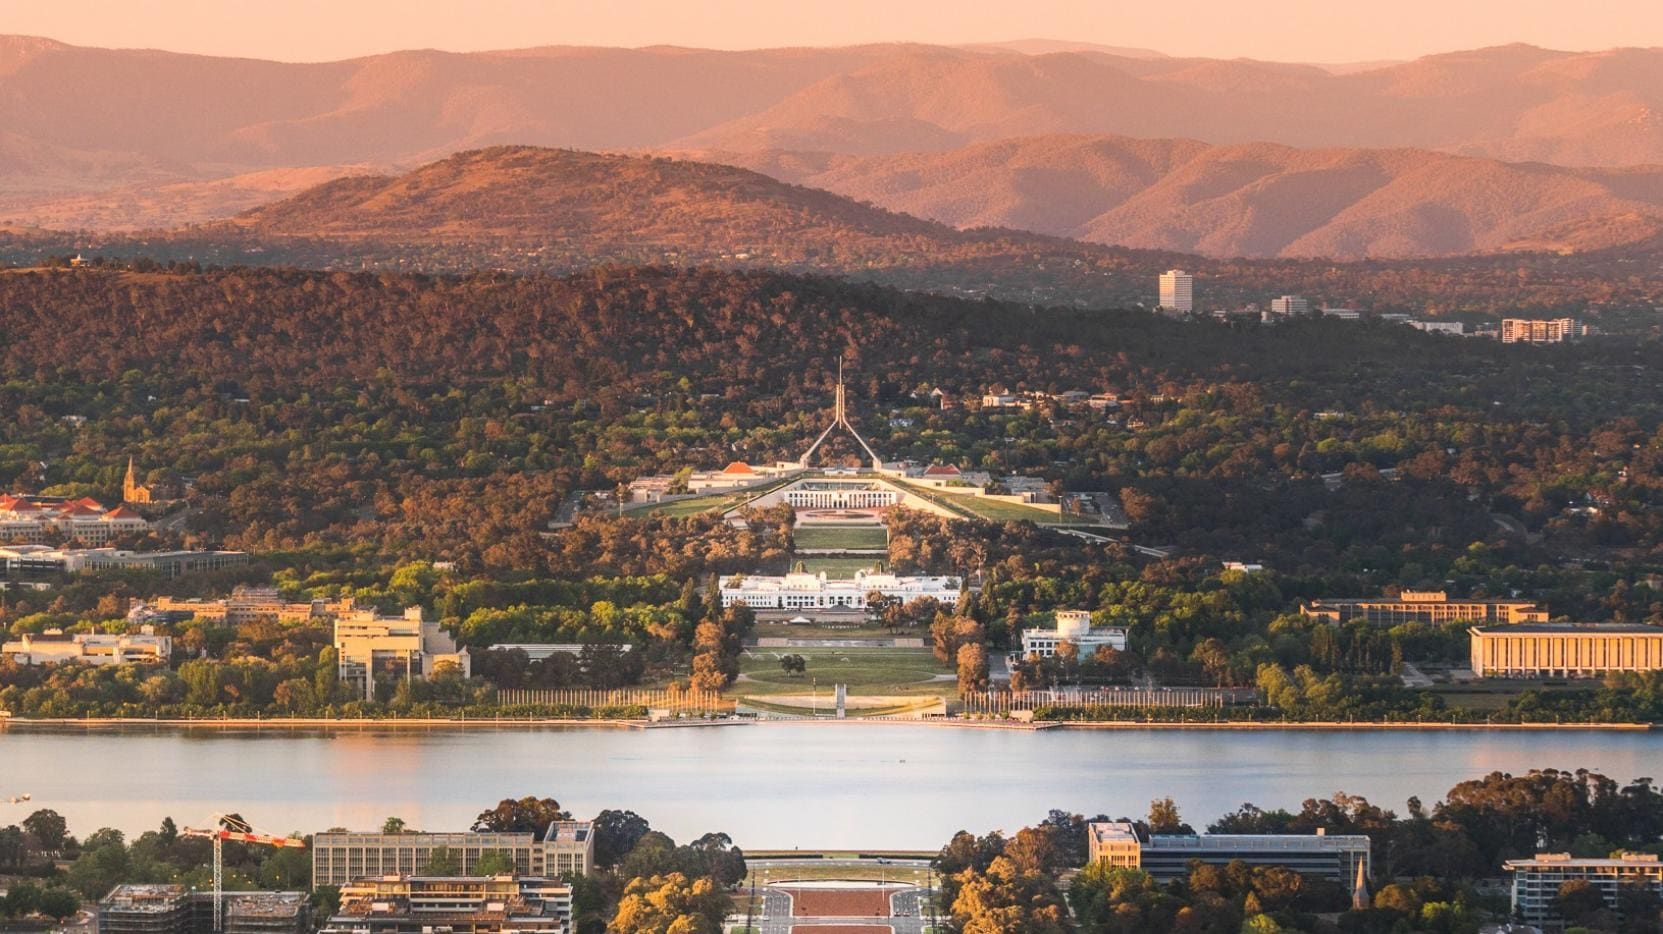 Vue depuis Mount Ainslie, Canberra, ACT © Rob Mulally for VisitCanberra